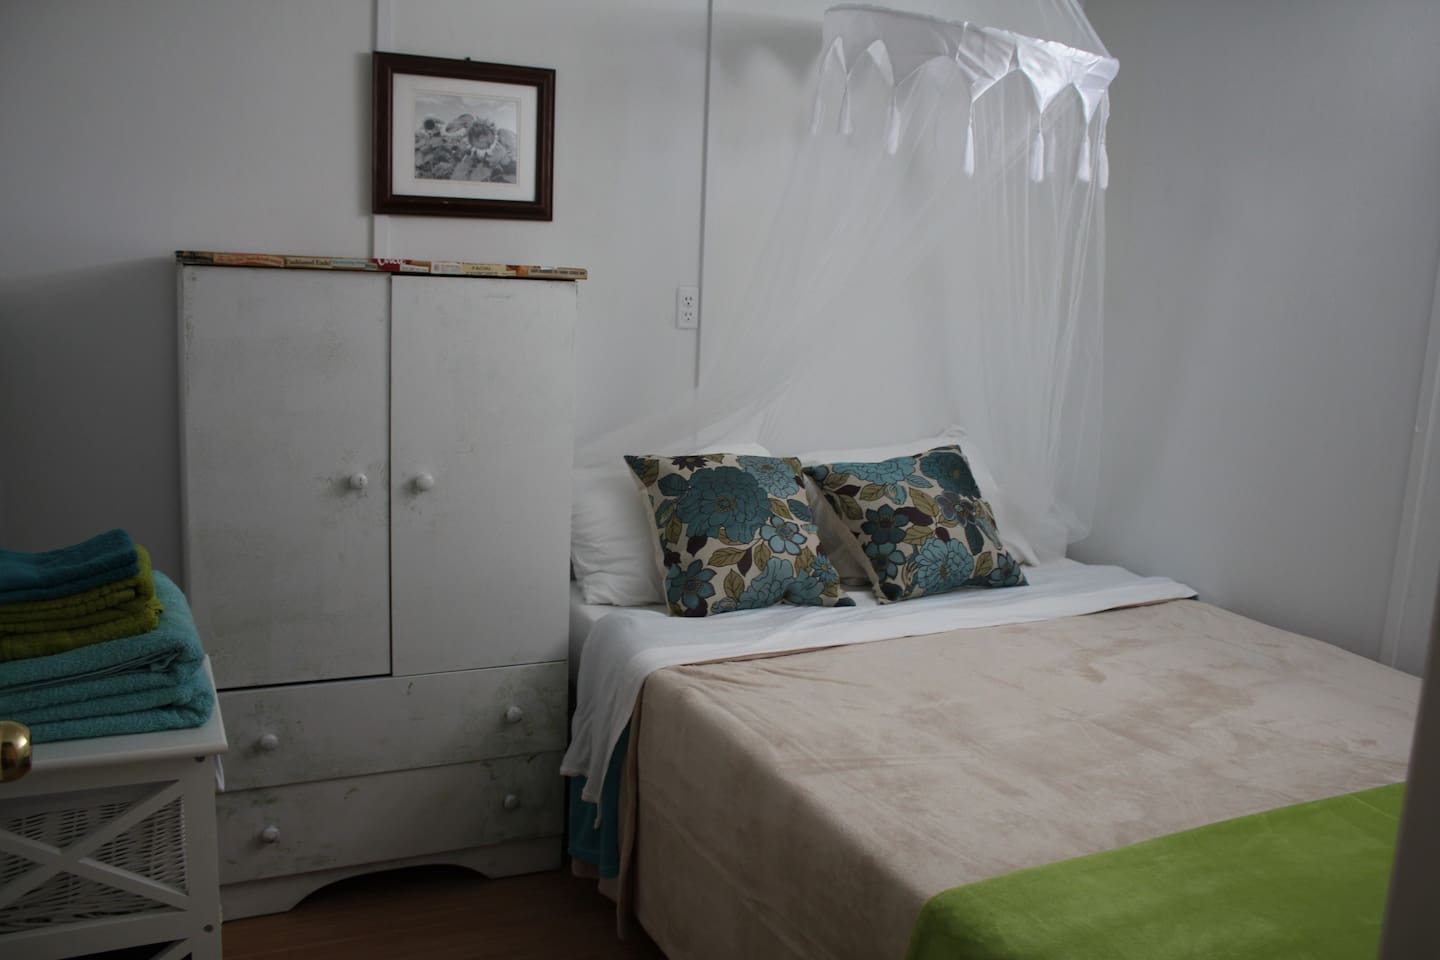 Beautiful cozy clean bedroom with brand new mattress and bedding